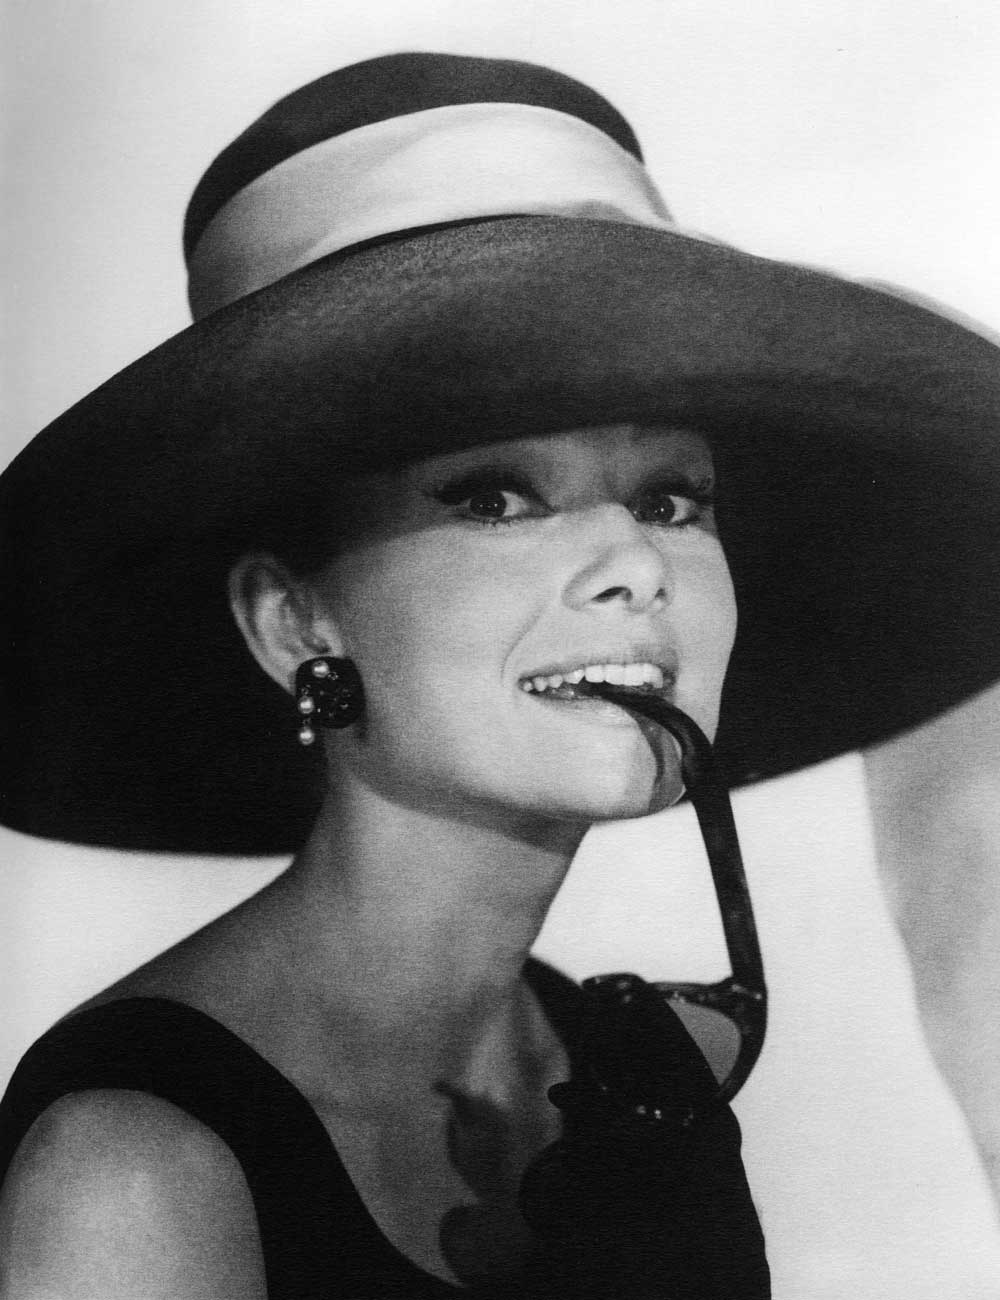 Audrey Hepburn in Breakfast at Tiffany's. Foto: Donaldson Collection/Getty Images